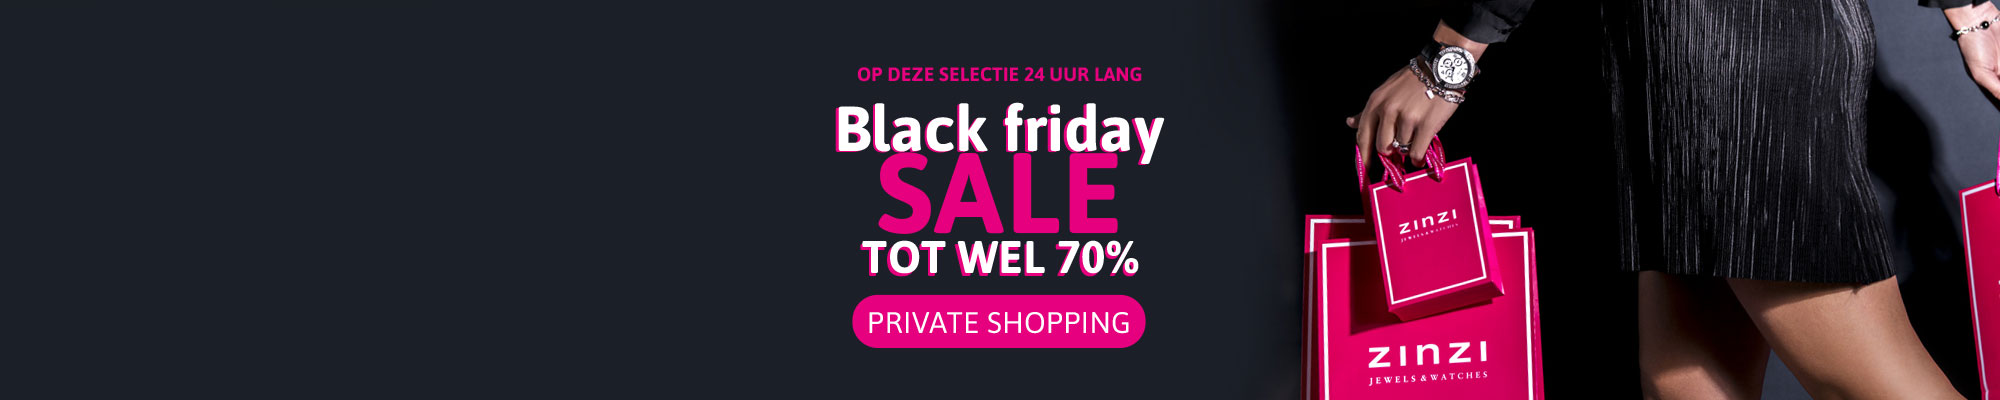 Private Shopping Black Friday